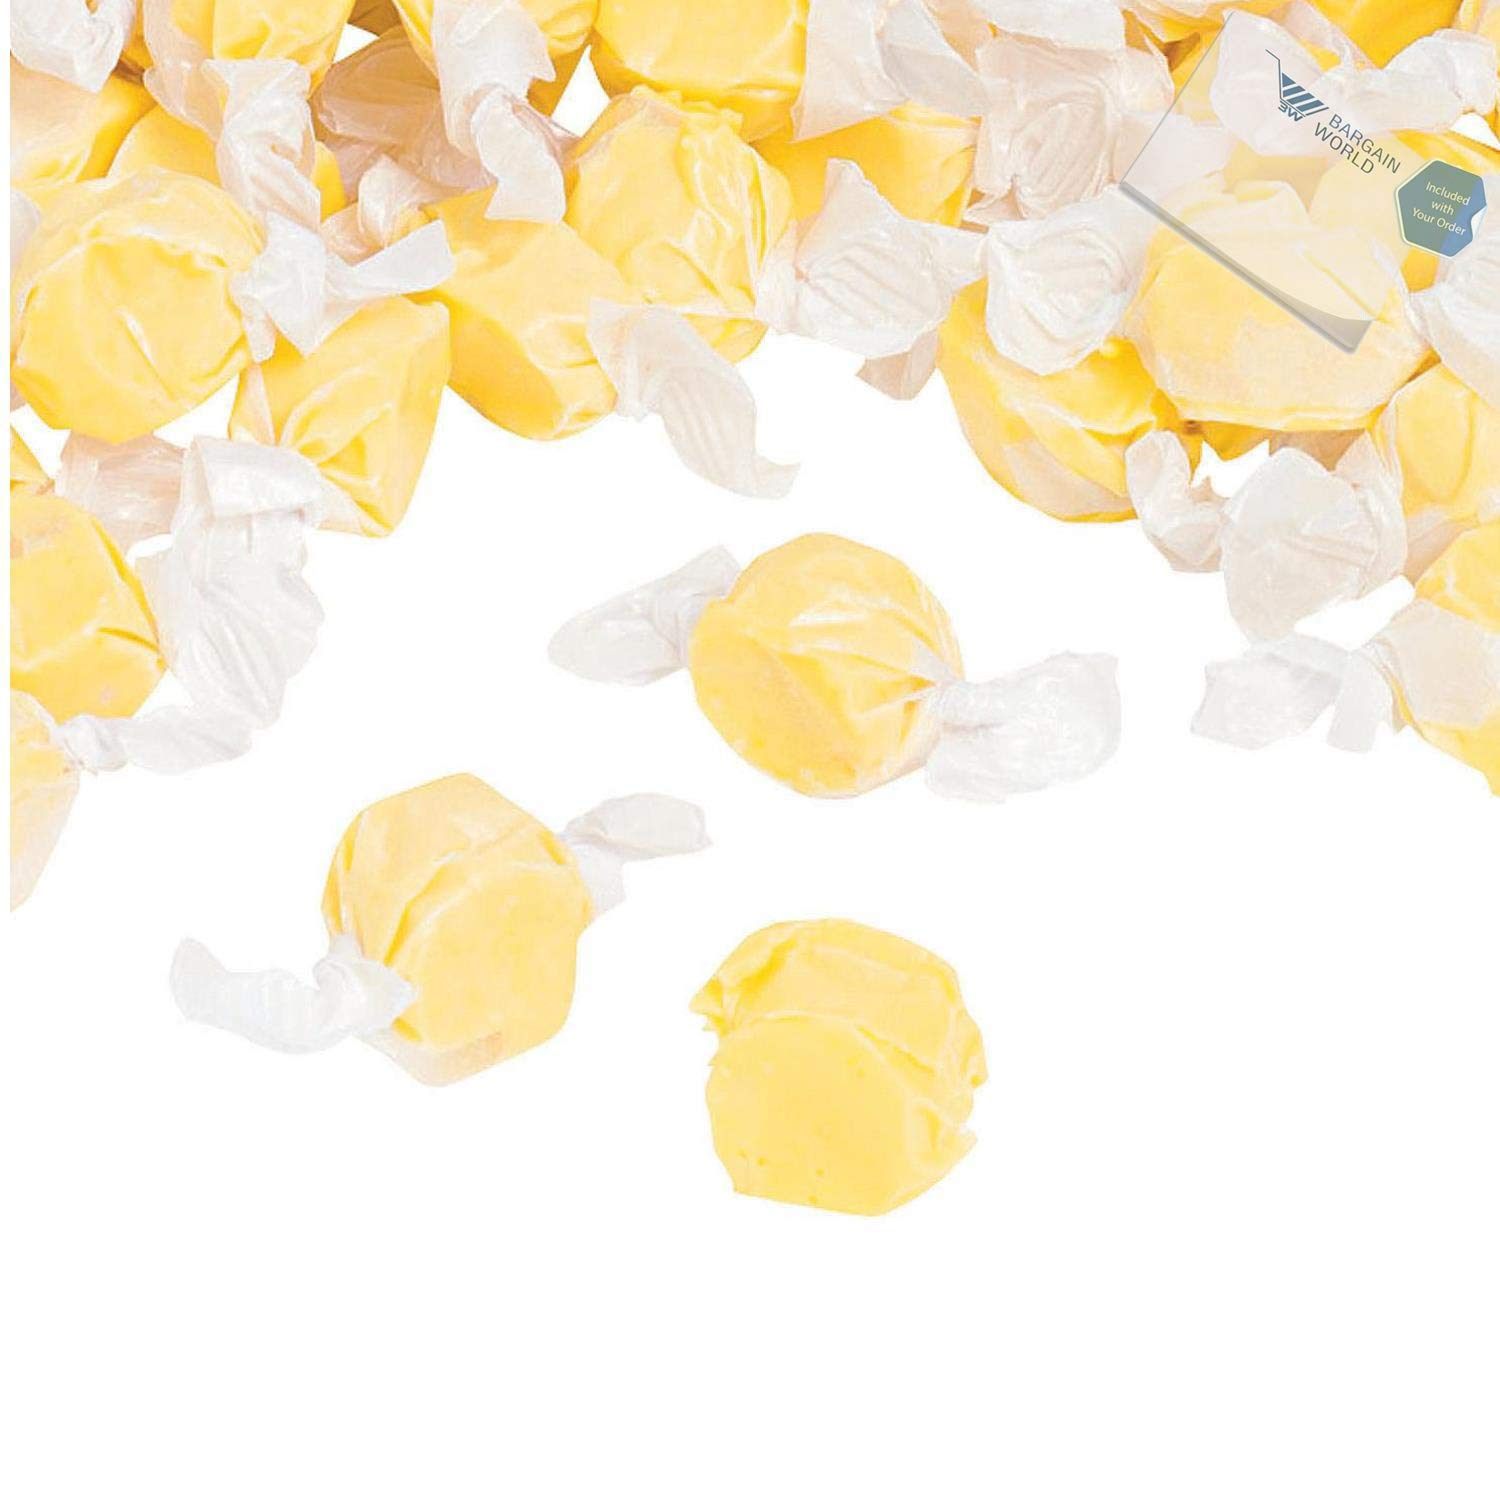 Bargain World Yellow Salt Water Taffy (With Sticky Notes)